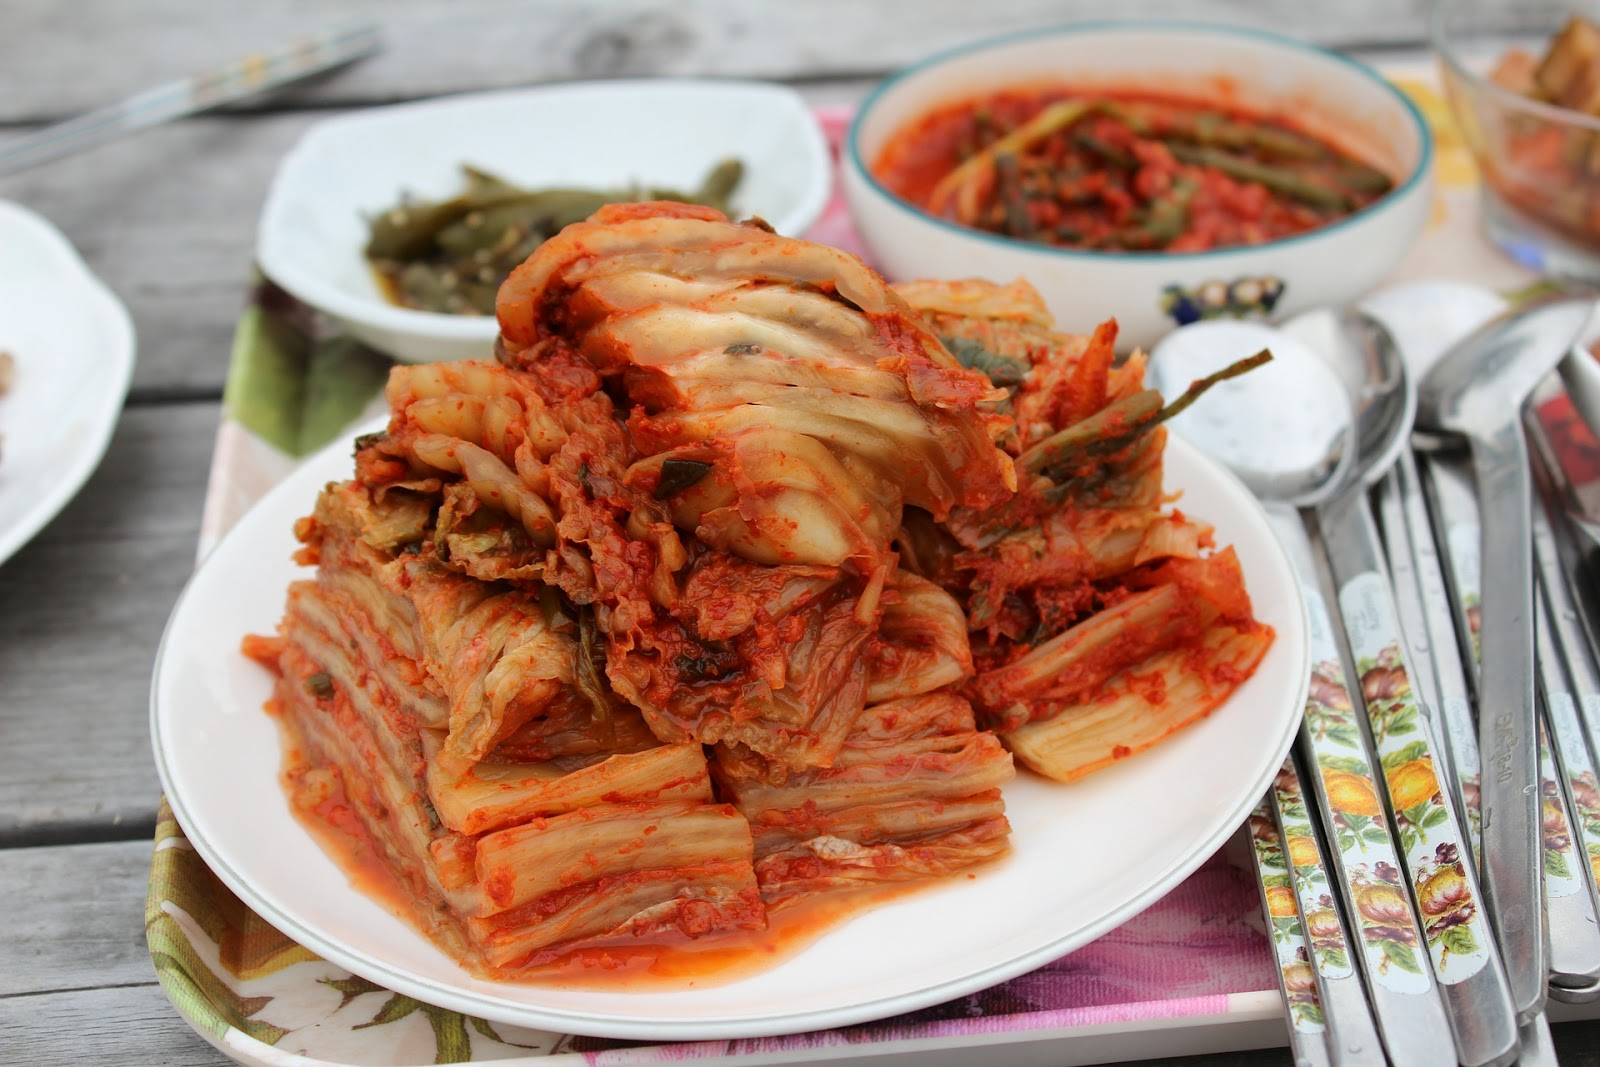 A plate of kimchi, a source of vegan probiotics